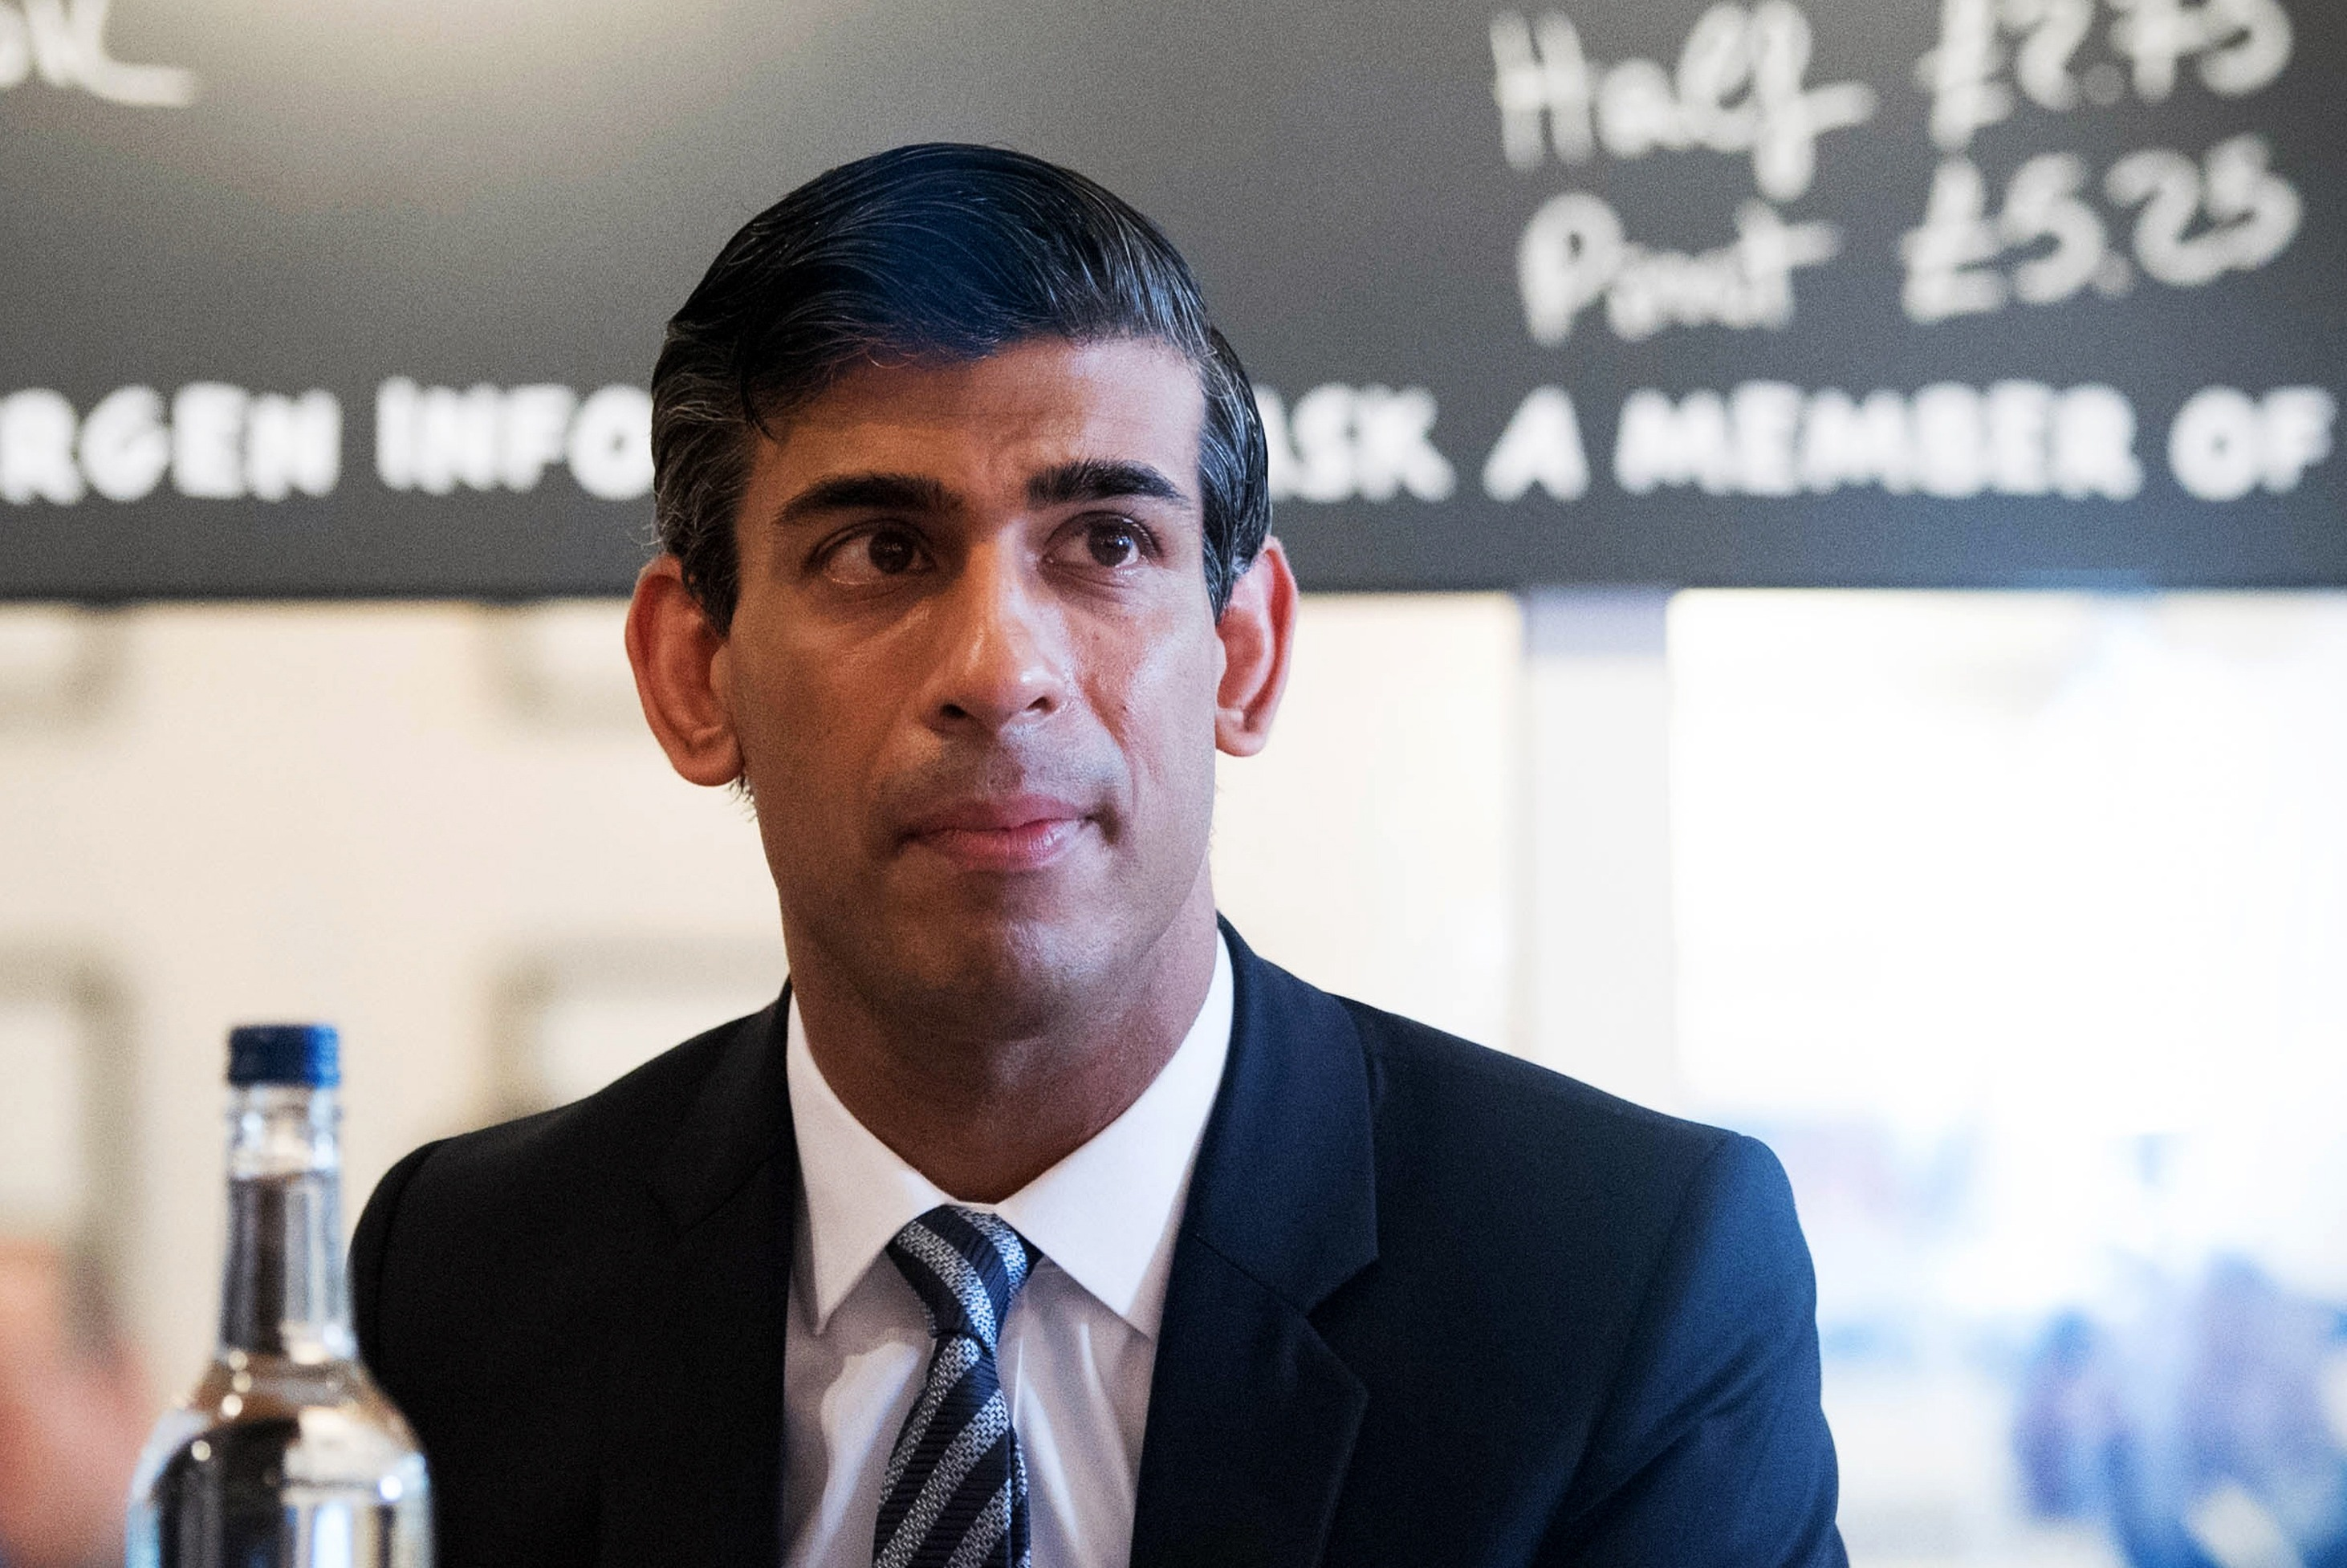 Chancellor Rishi Sunak has introduced the Job Support Scheme, which will replace furlough when it ends tomorrow